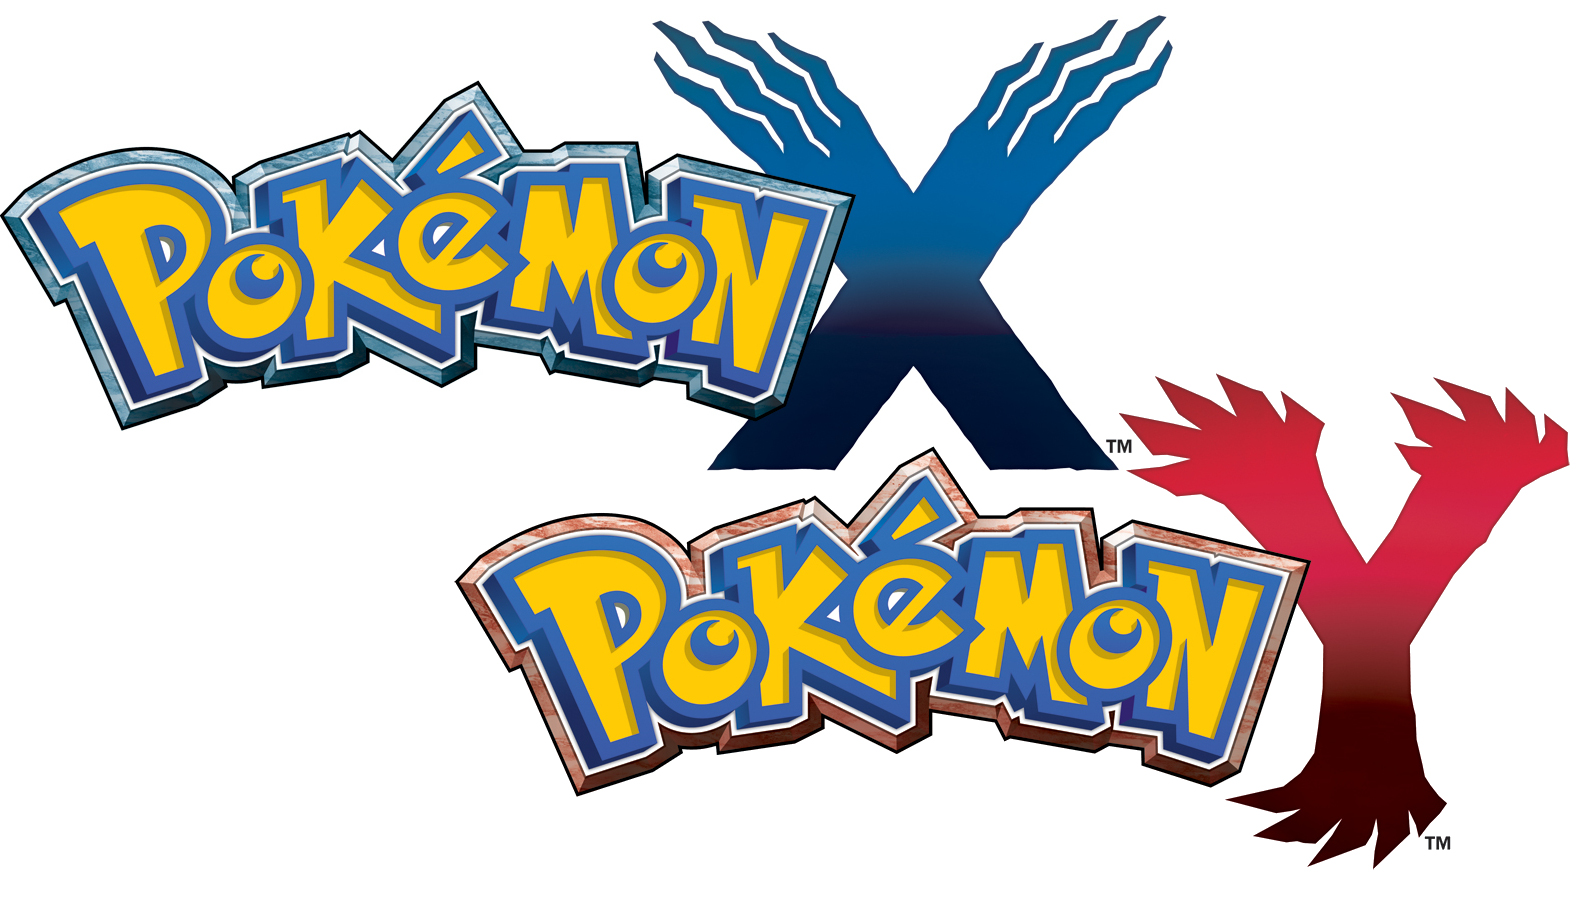 First Official Pokémon Character Artwork Released For Pokémon X And Pokémon Y